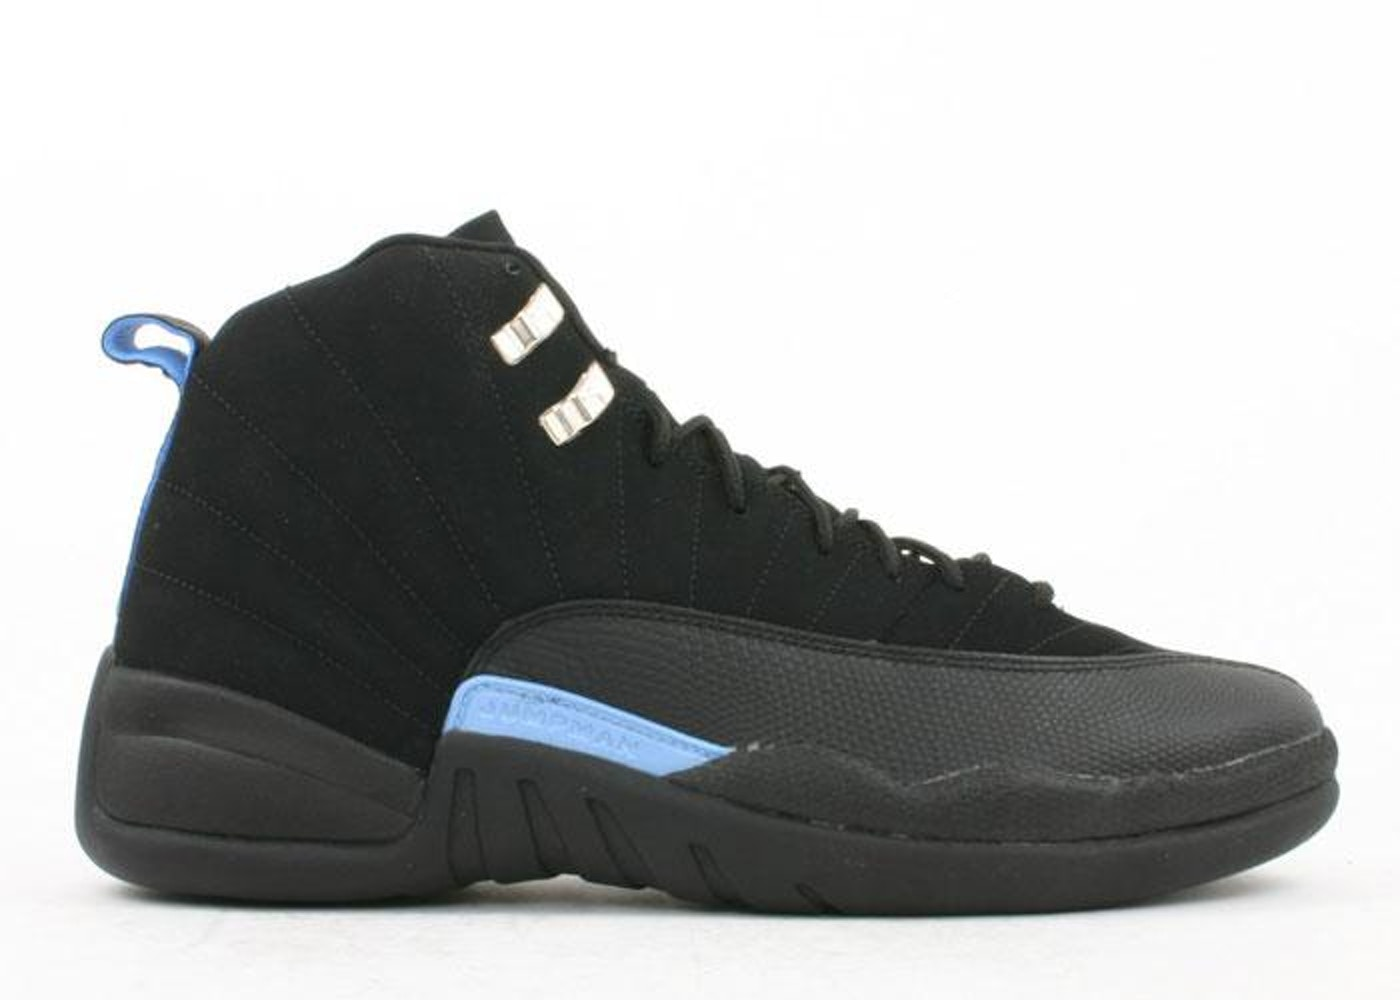 ナイキ ジョーダン JORDAN スニーカー 【 12 RETRO NUBUCK 2003 BLACK WHITEUNIVERSITY BLUE 】 メンズ